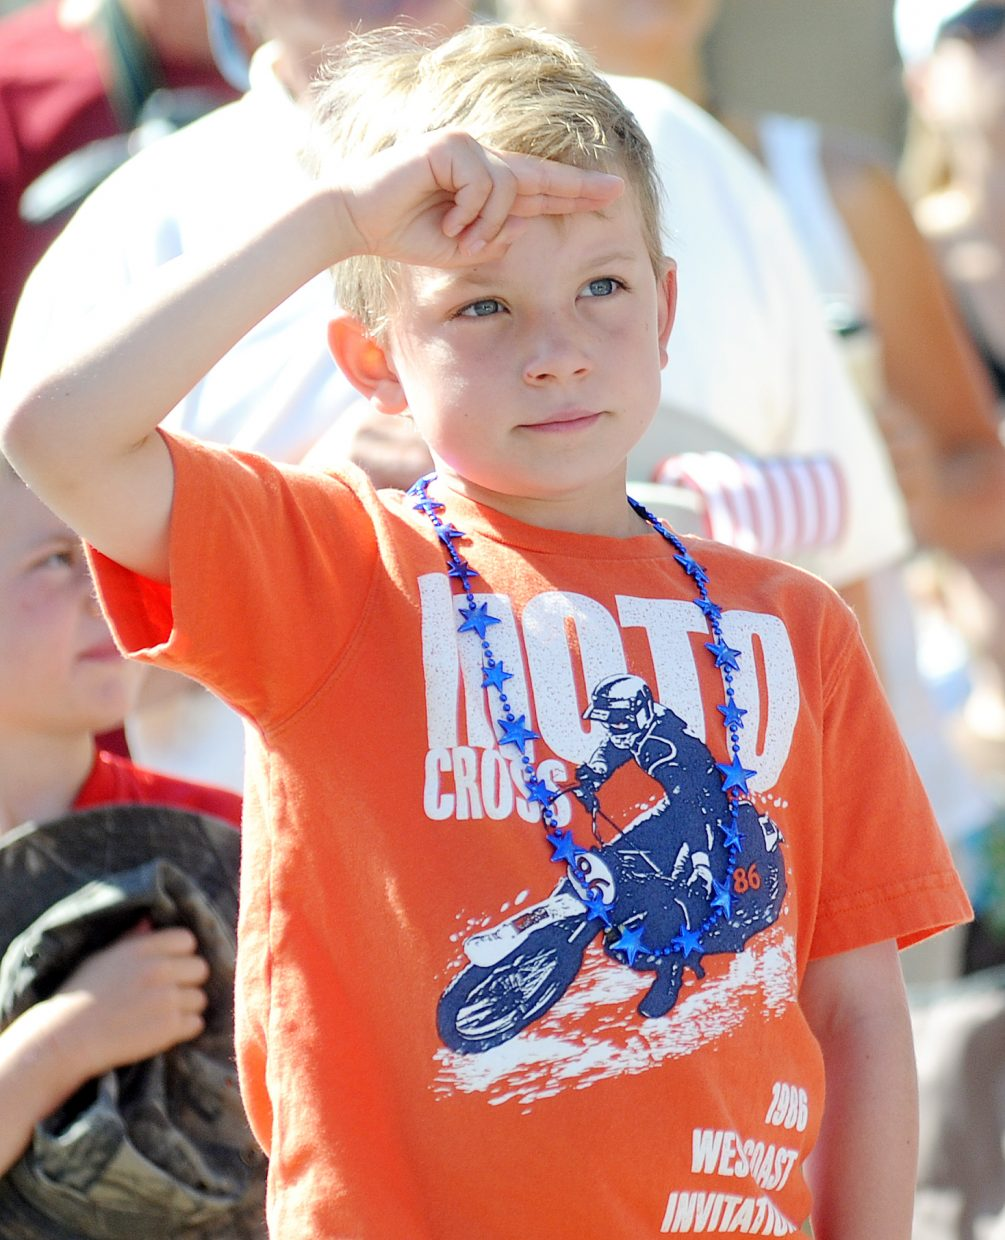 Ryder Pride, 7, salutes during the national anthem before the start of Sunday's July 4 parade in downtown Steamboat Springs.